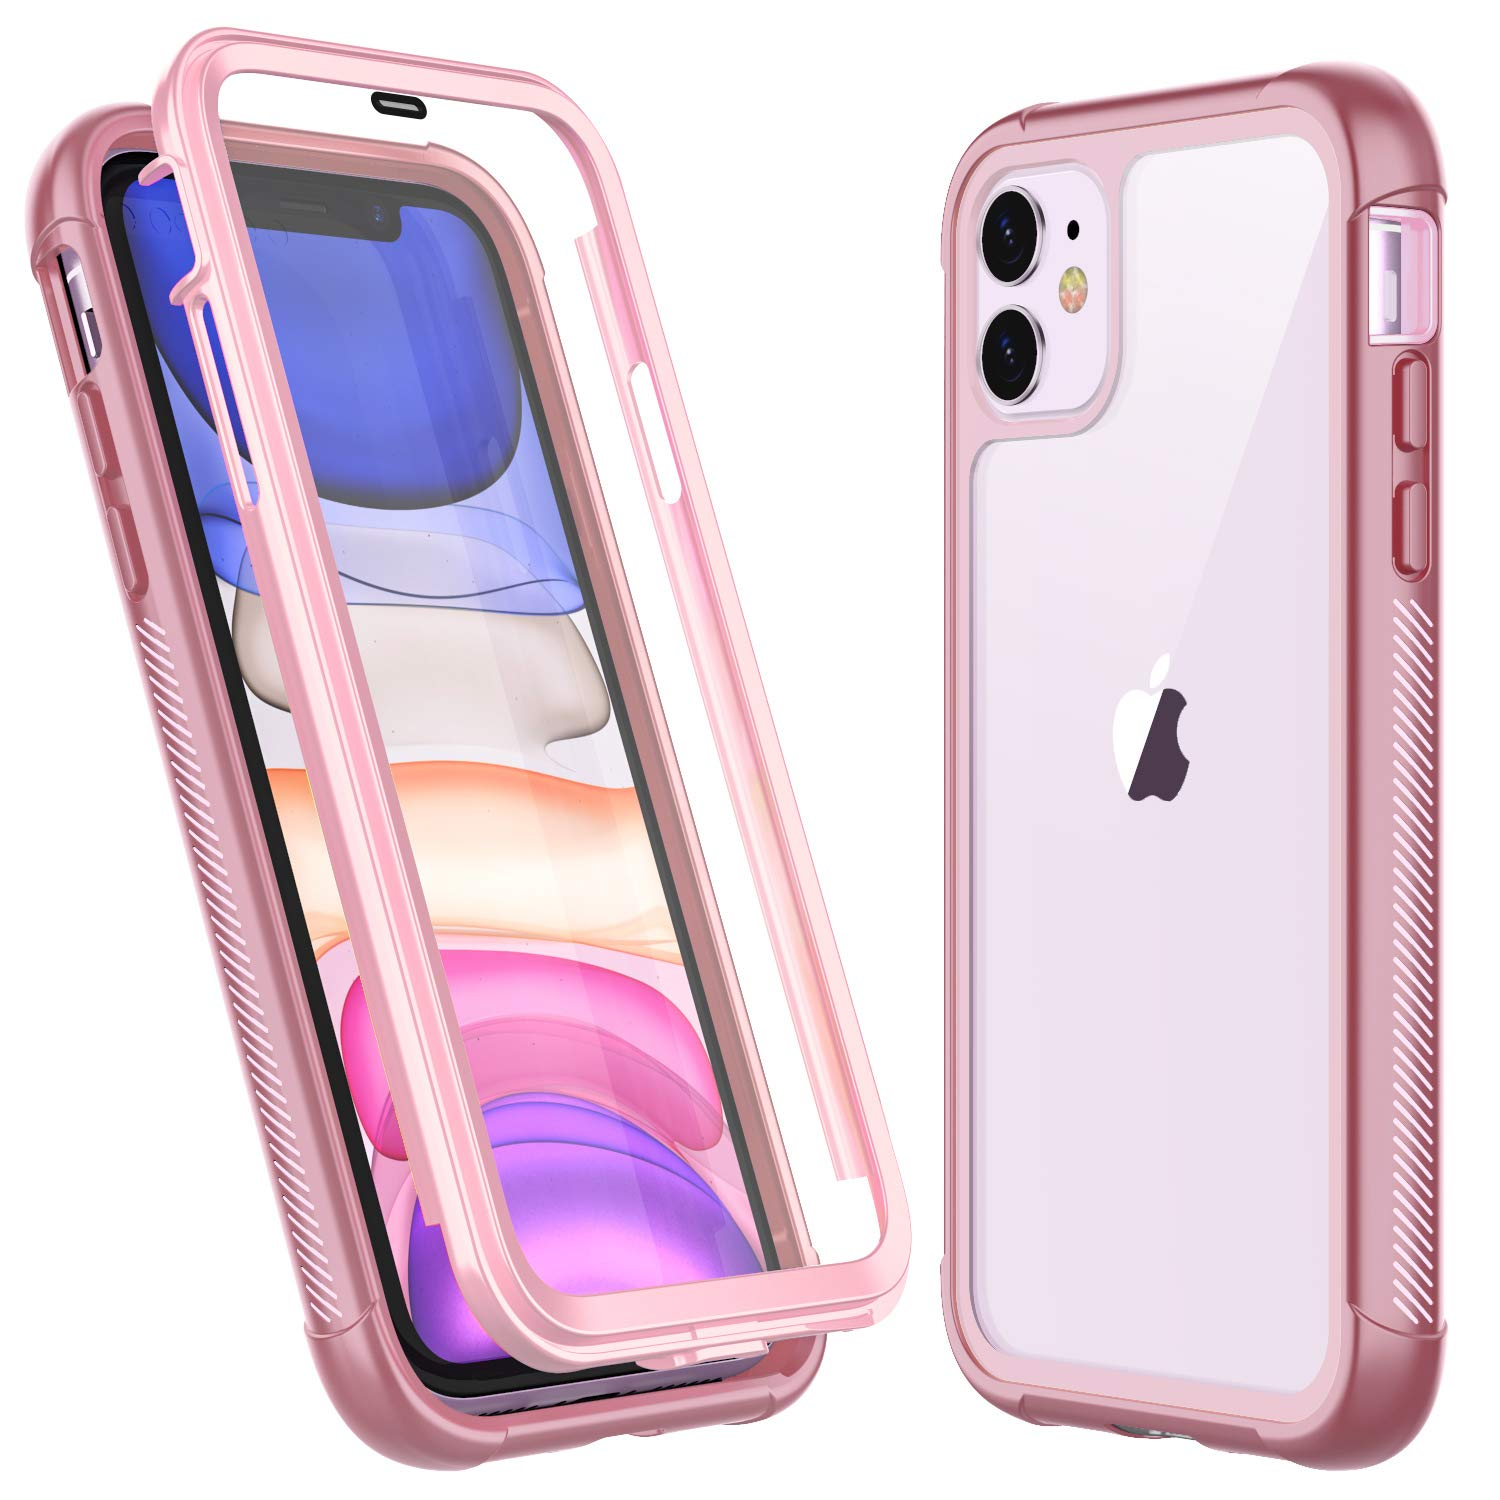 Temdan iPhone 11 Case,Full Body Built in Screen Protector Multi-Directional Bumper Case Support Wireless Charging, Heavy Duty Rugged Dropproof Cases for iPhone 11 6.1 inch 2019 (Pink)